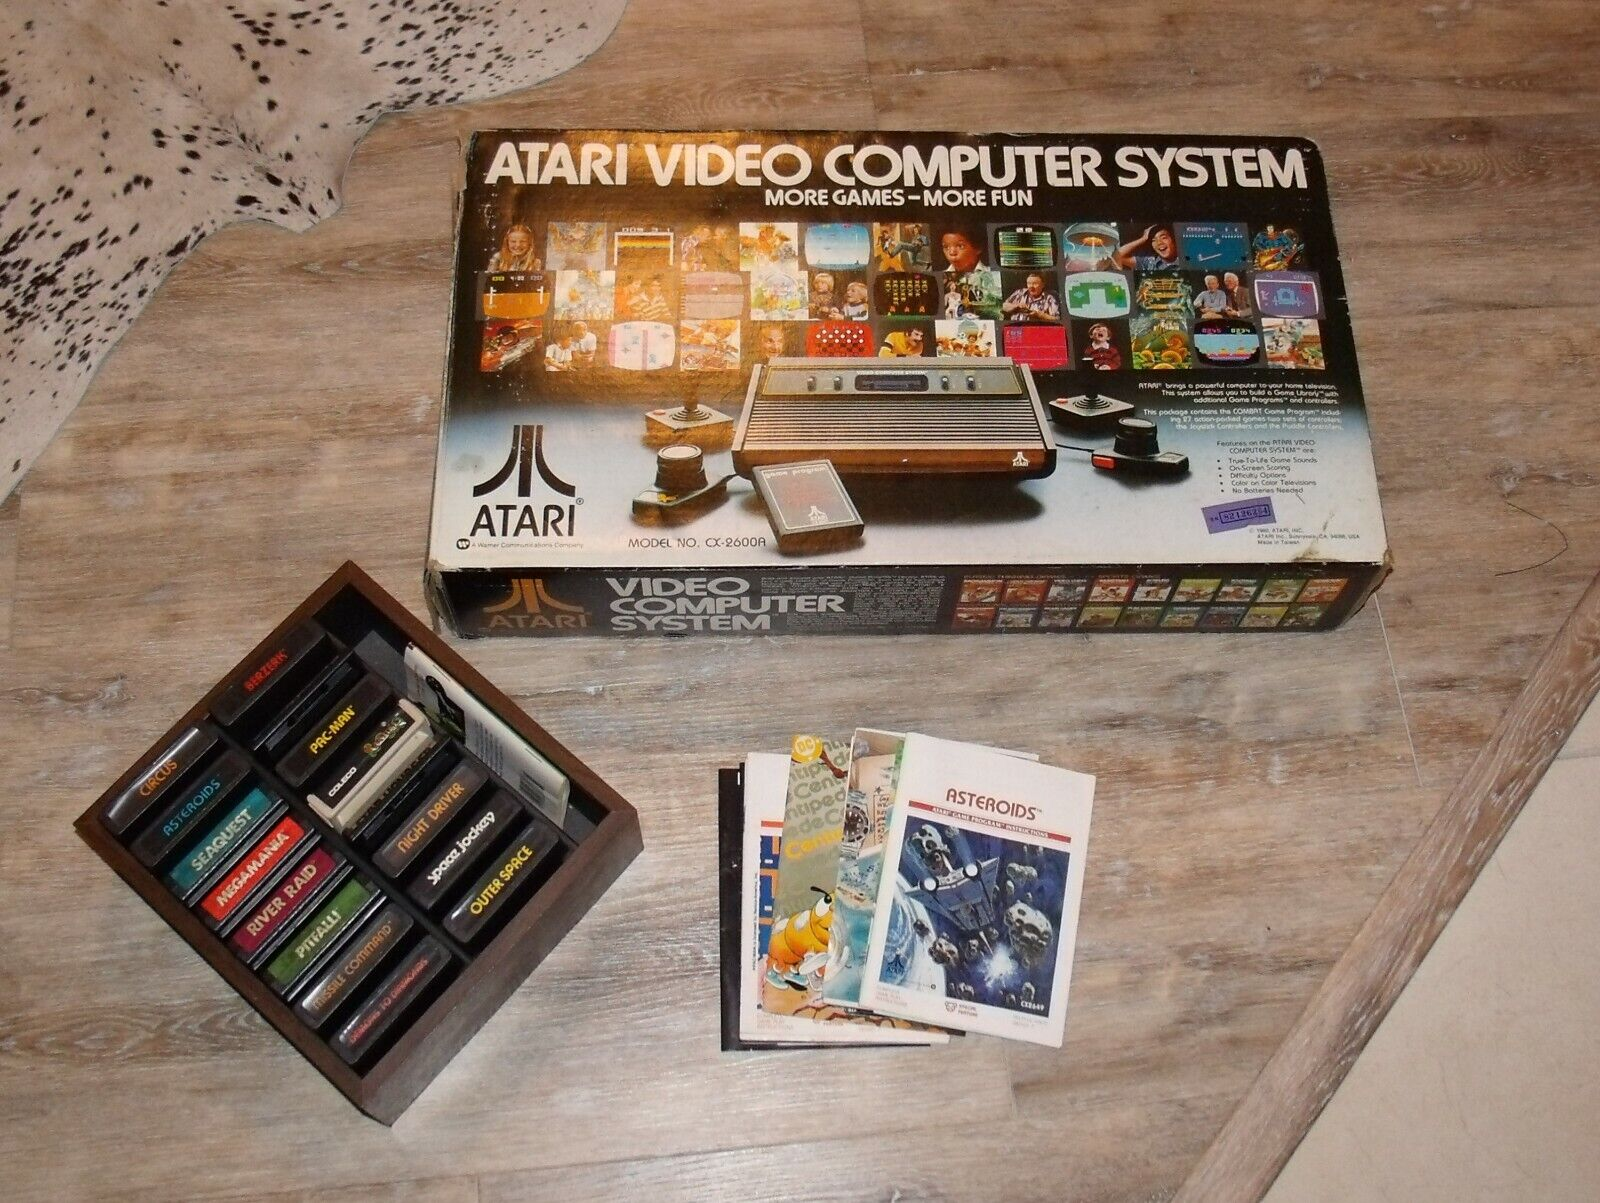 Computer Games - Atari Video Computer Game System with Games 2600A